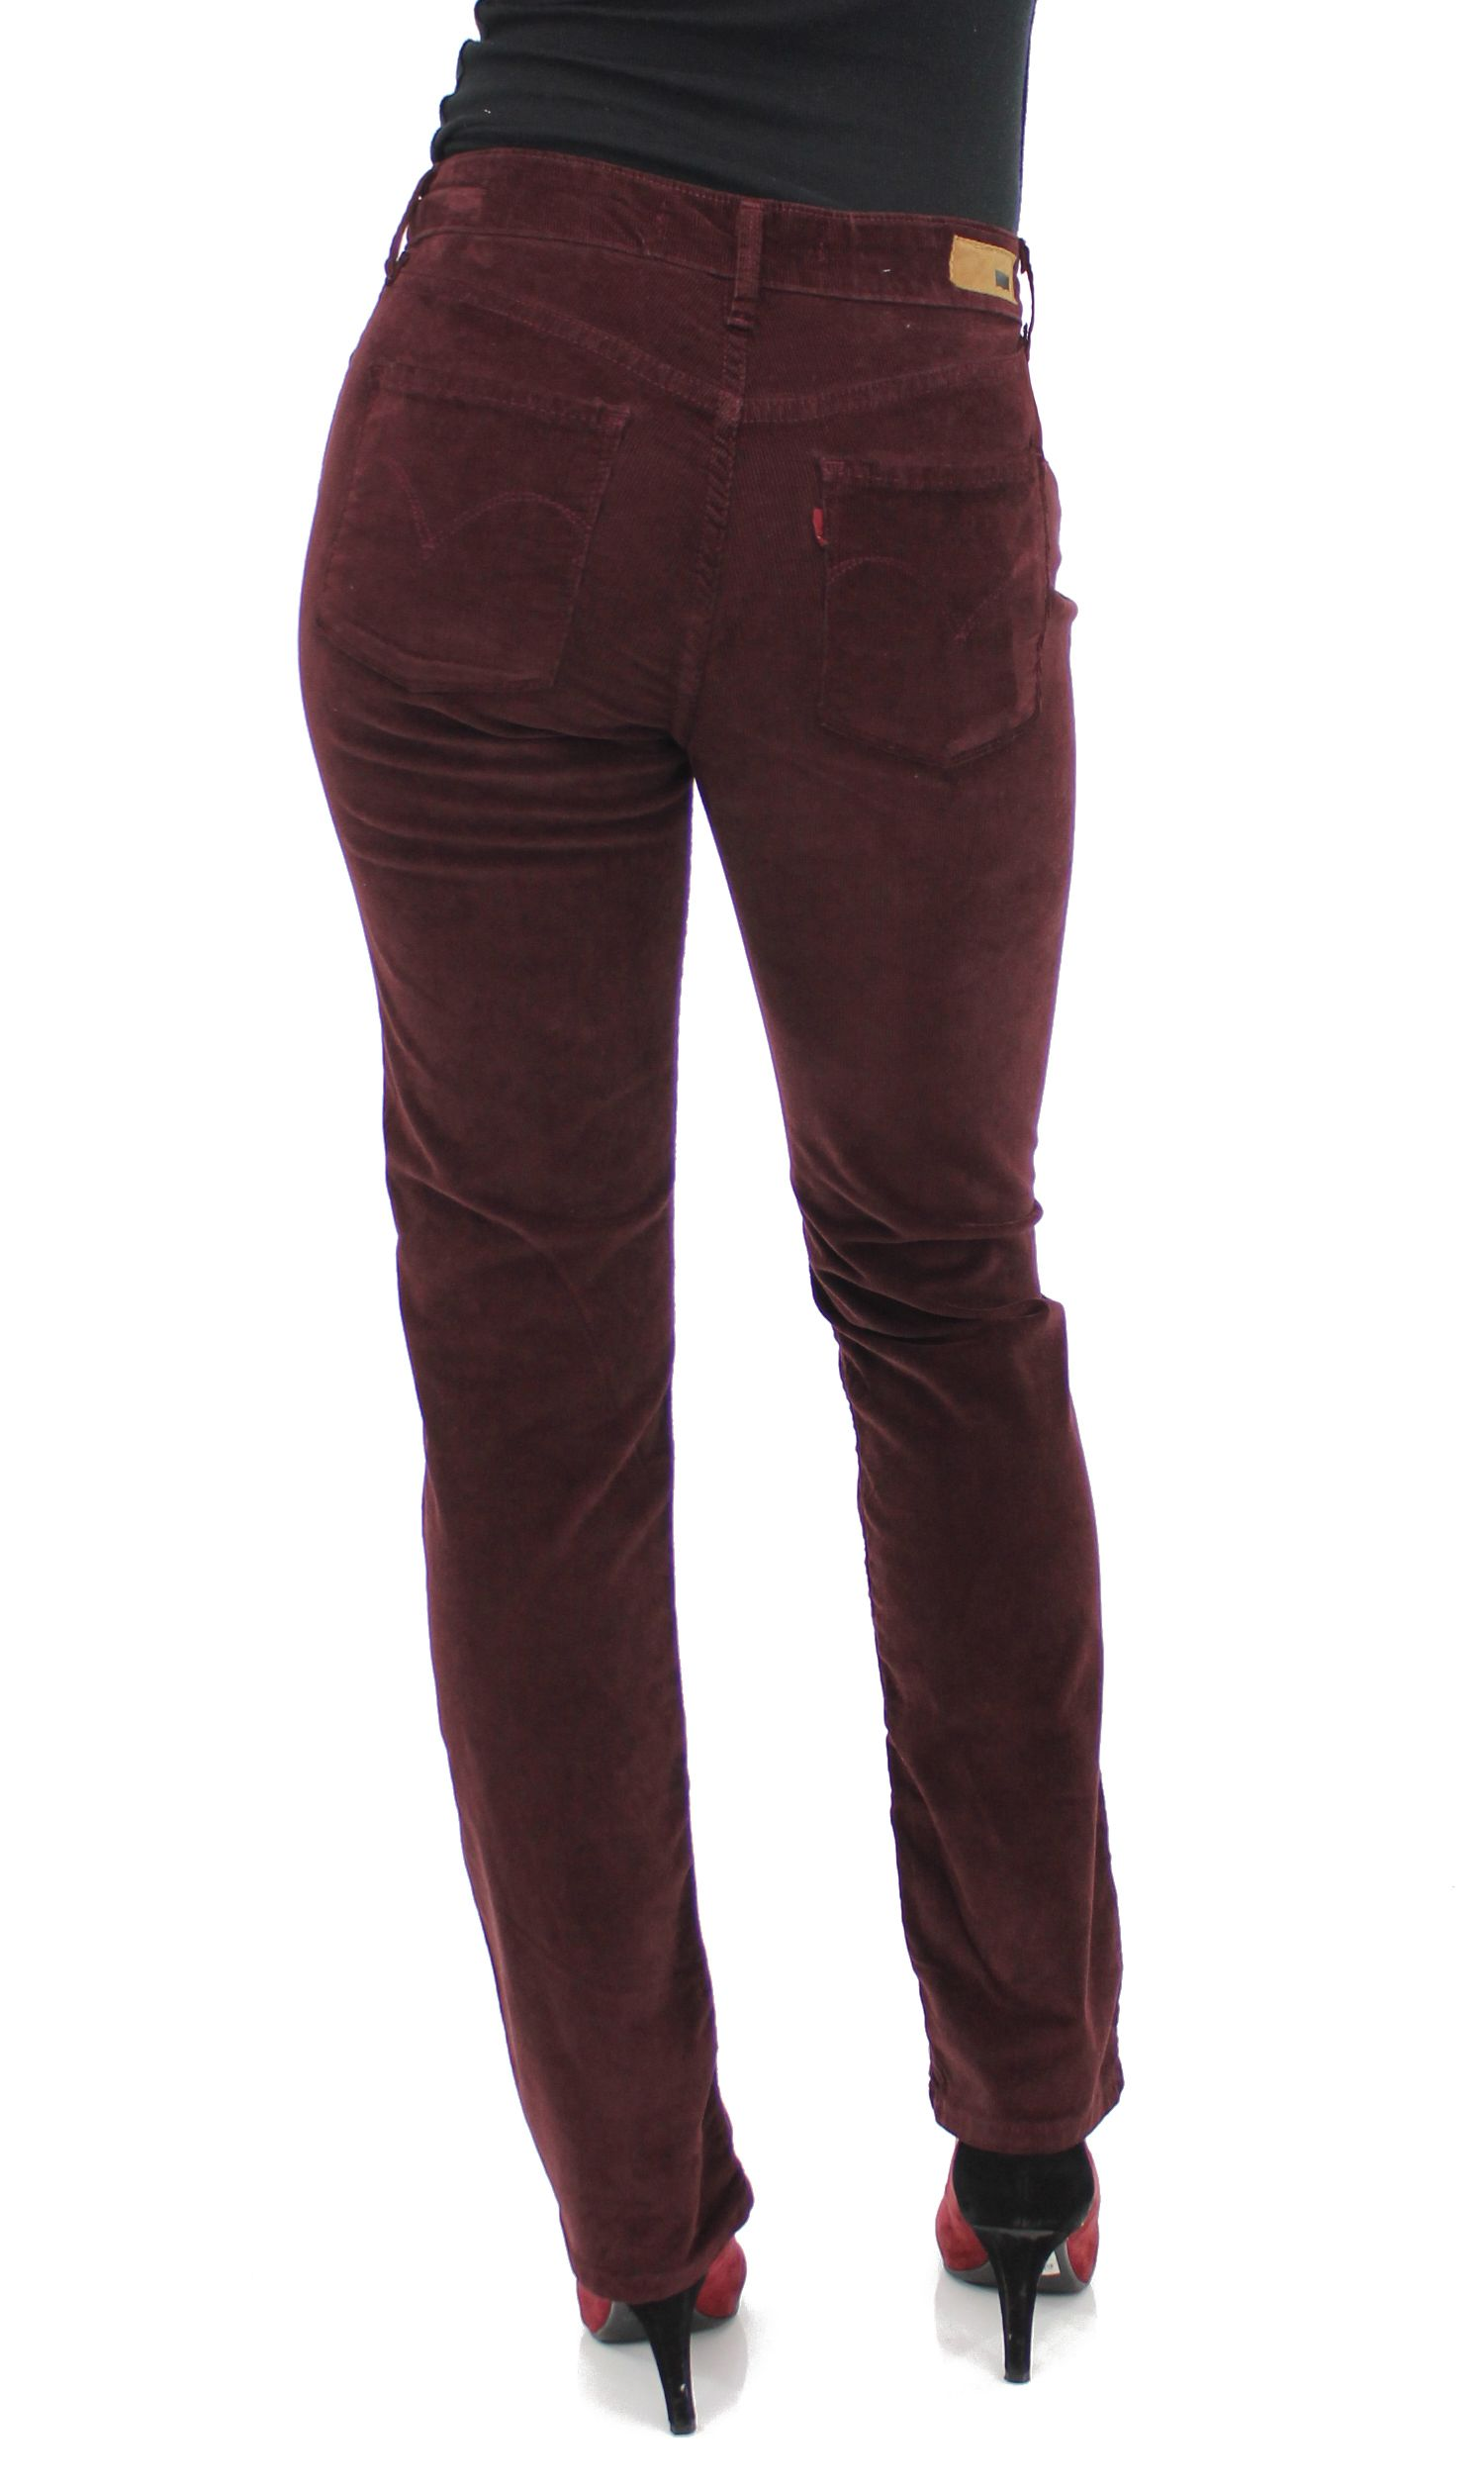 Luxury Lyst - Urban Outfitters Levis 511 Corduroy Pant In Natural For Men